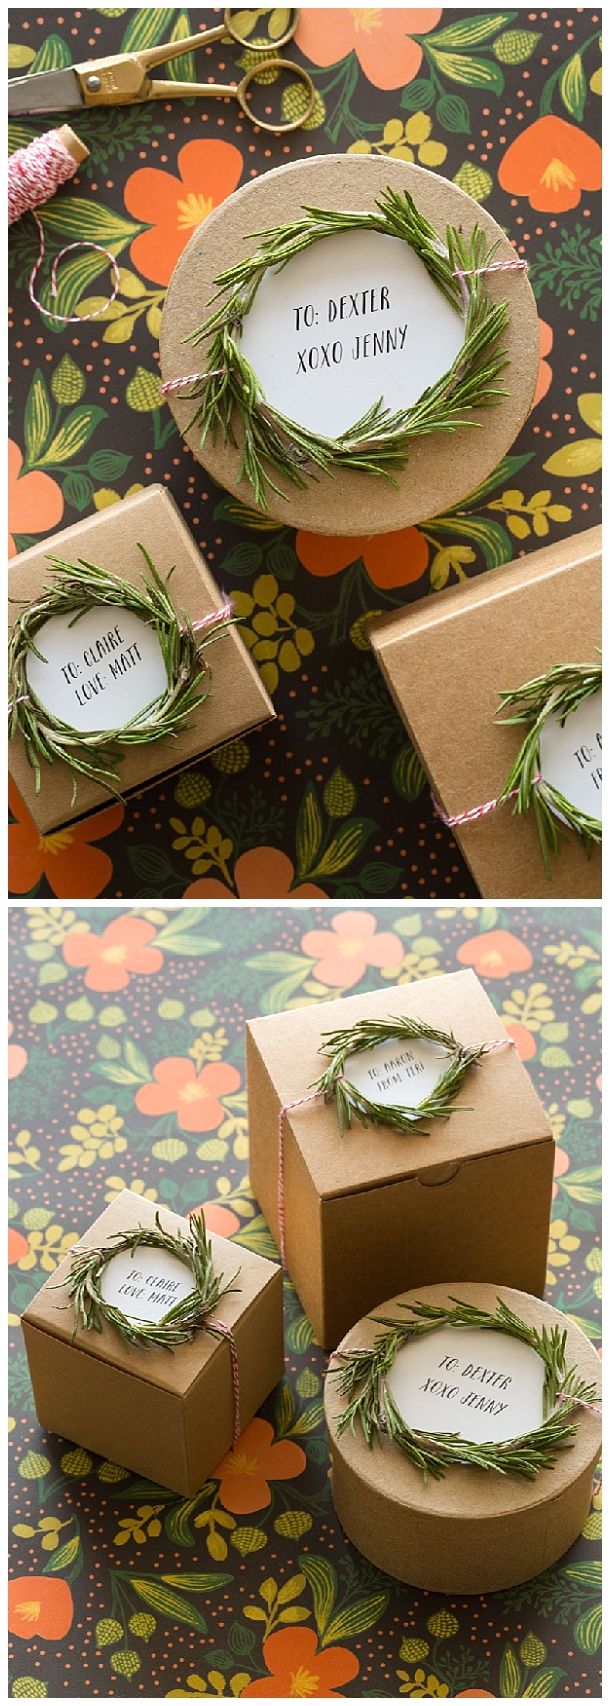 Handmade Rosemary Wreath Gift Toppers Tutorial via Spoon Fork Bacon - The BEST DIY Gift Toppers - Pretty and EASY Inexpensive Handmade Ideas for Christmas, Birthdays, Holidays and any special occasion! #diygifttoppers #DIYGiftwrapping #diygiftwrap #gifttoppers #christmasgifttoppers #diychristmasgifttoppers #birthdaygifttoppers #diychristmasbows